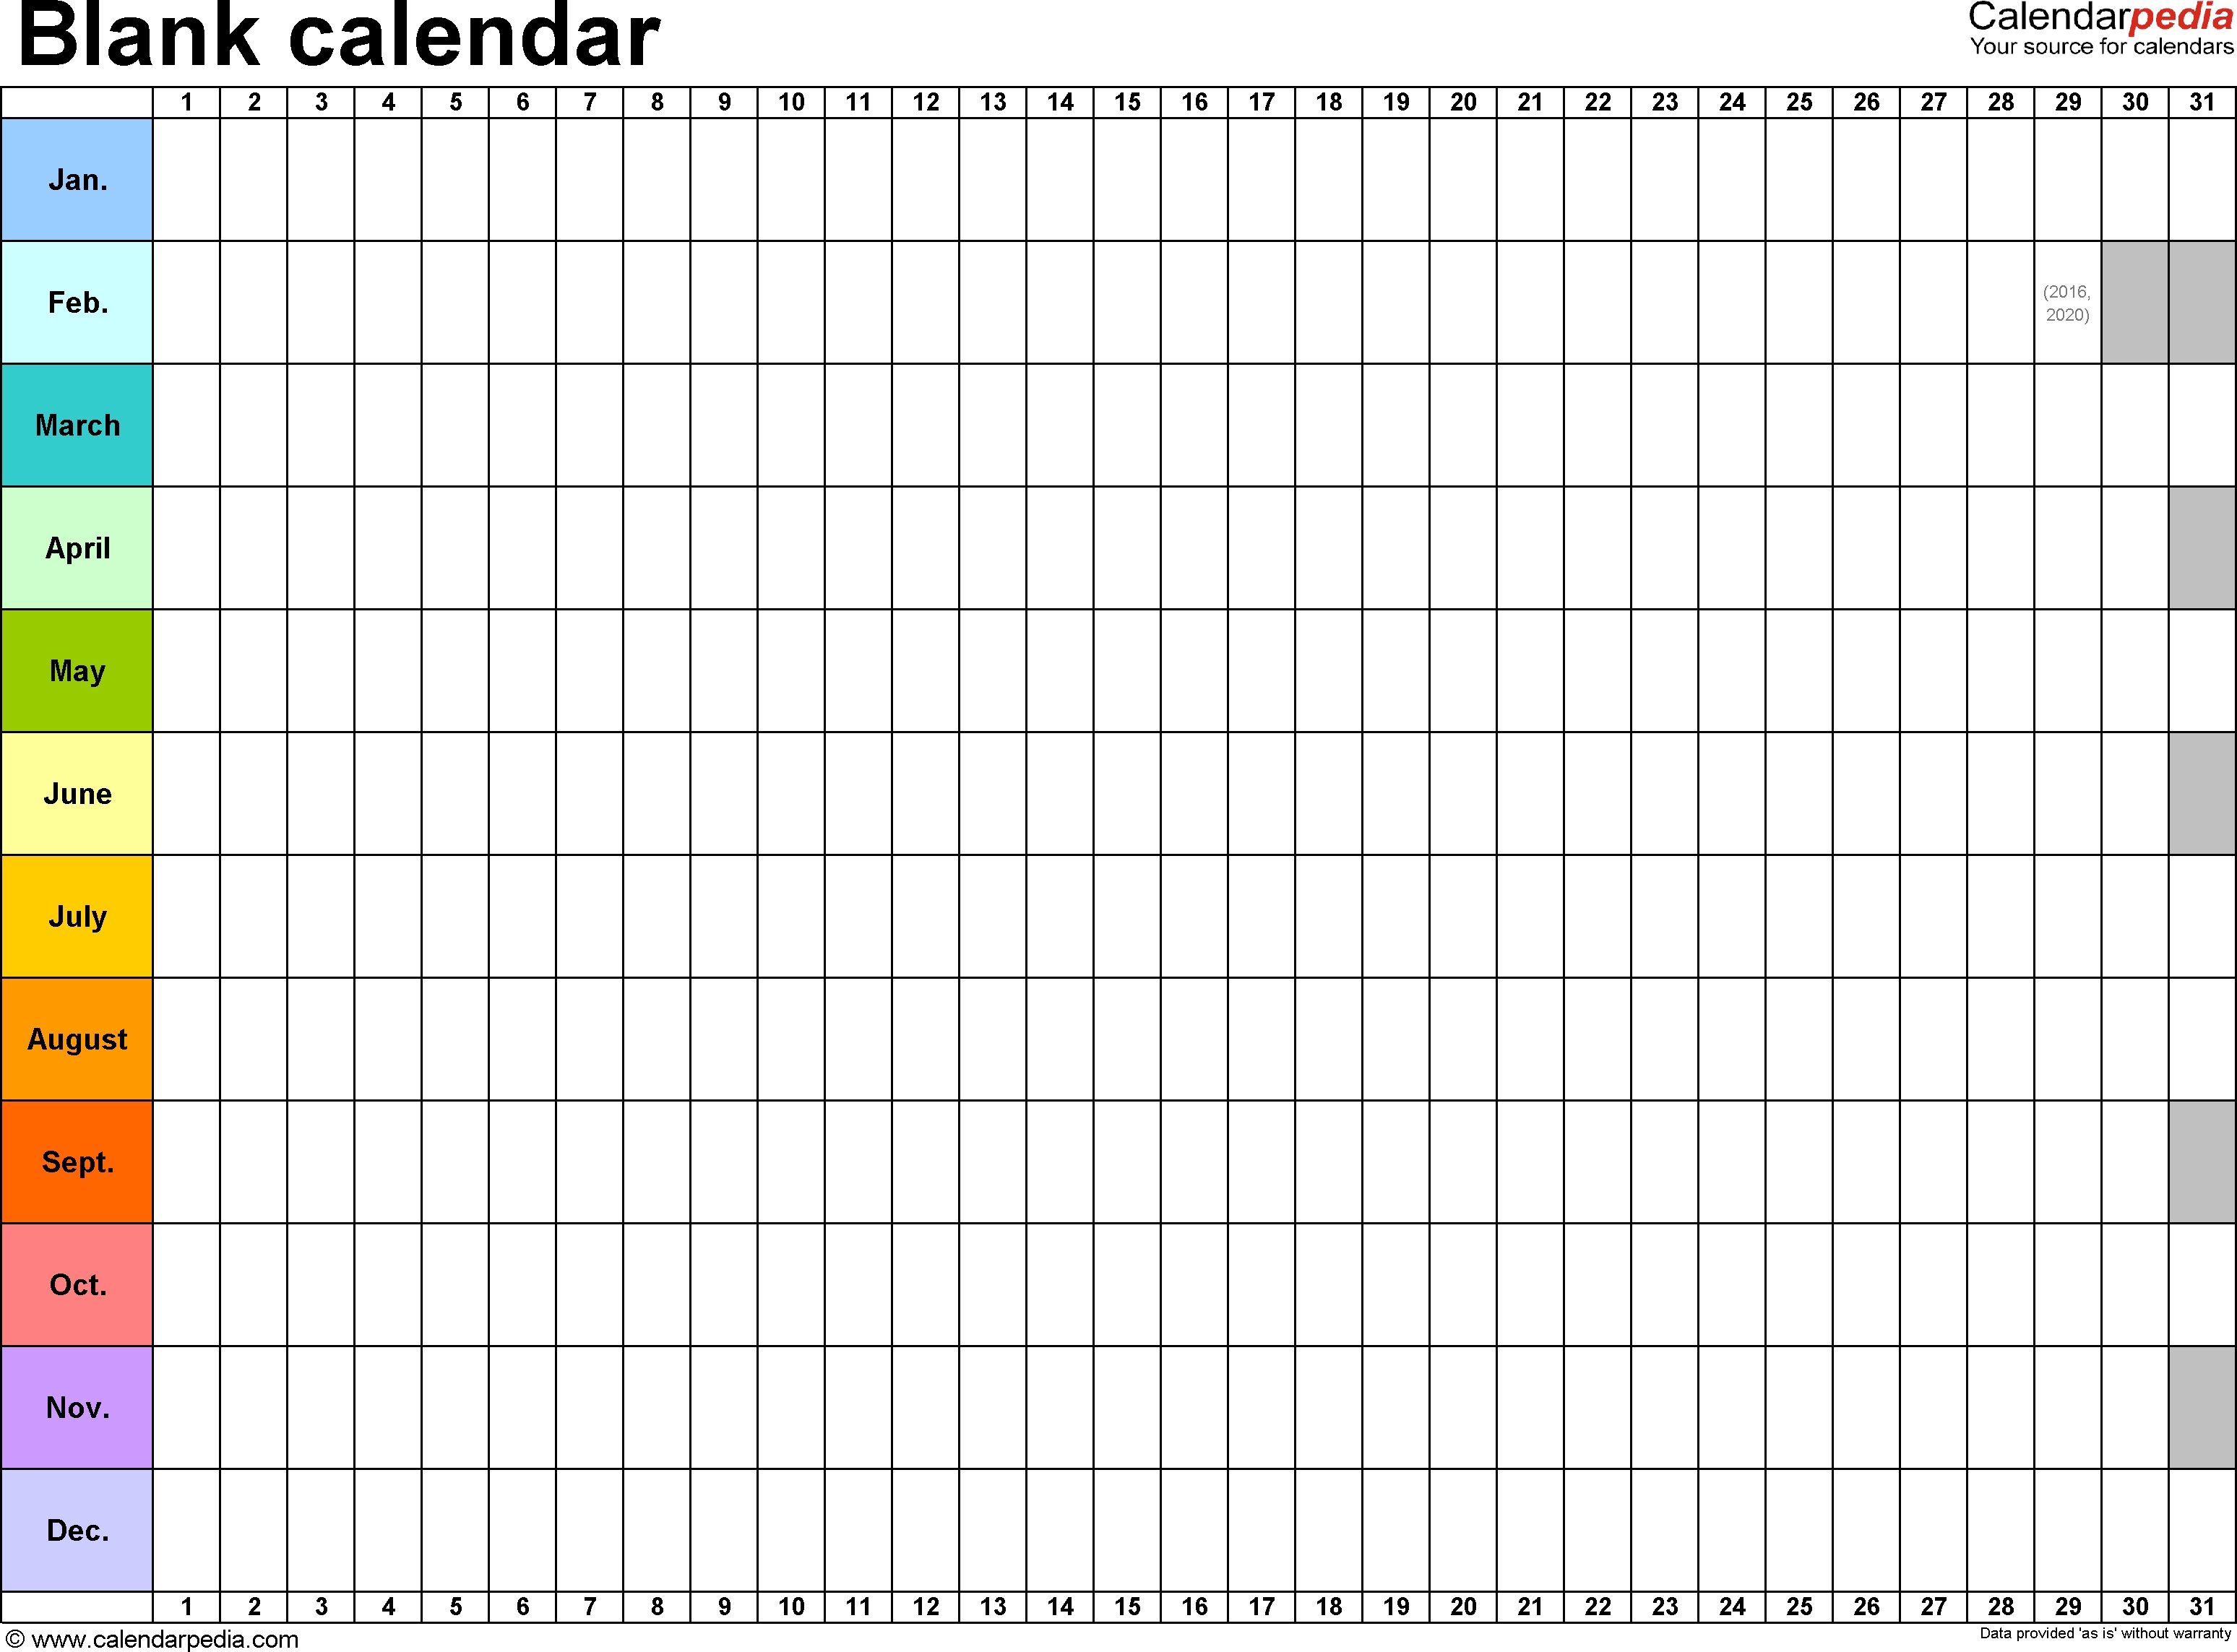 Monthly Schedule Template Blank Calendar Free Printable Icrosoft inside Free Printable Monthly Calendar Template